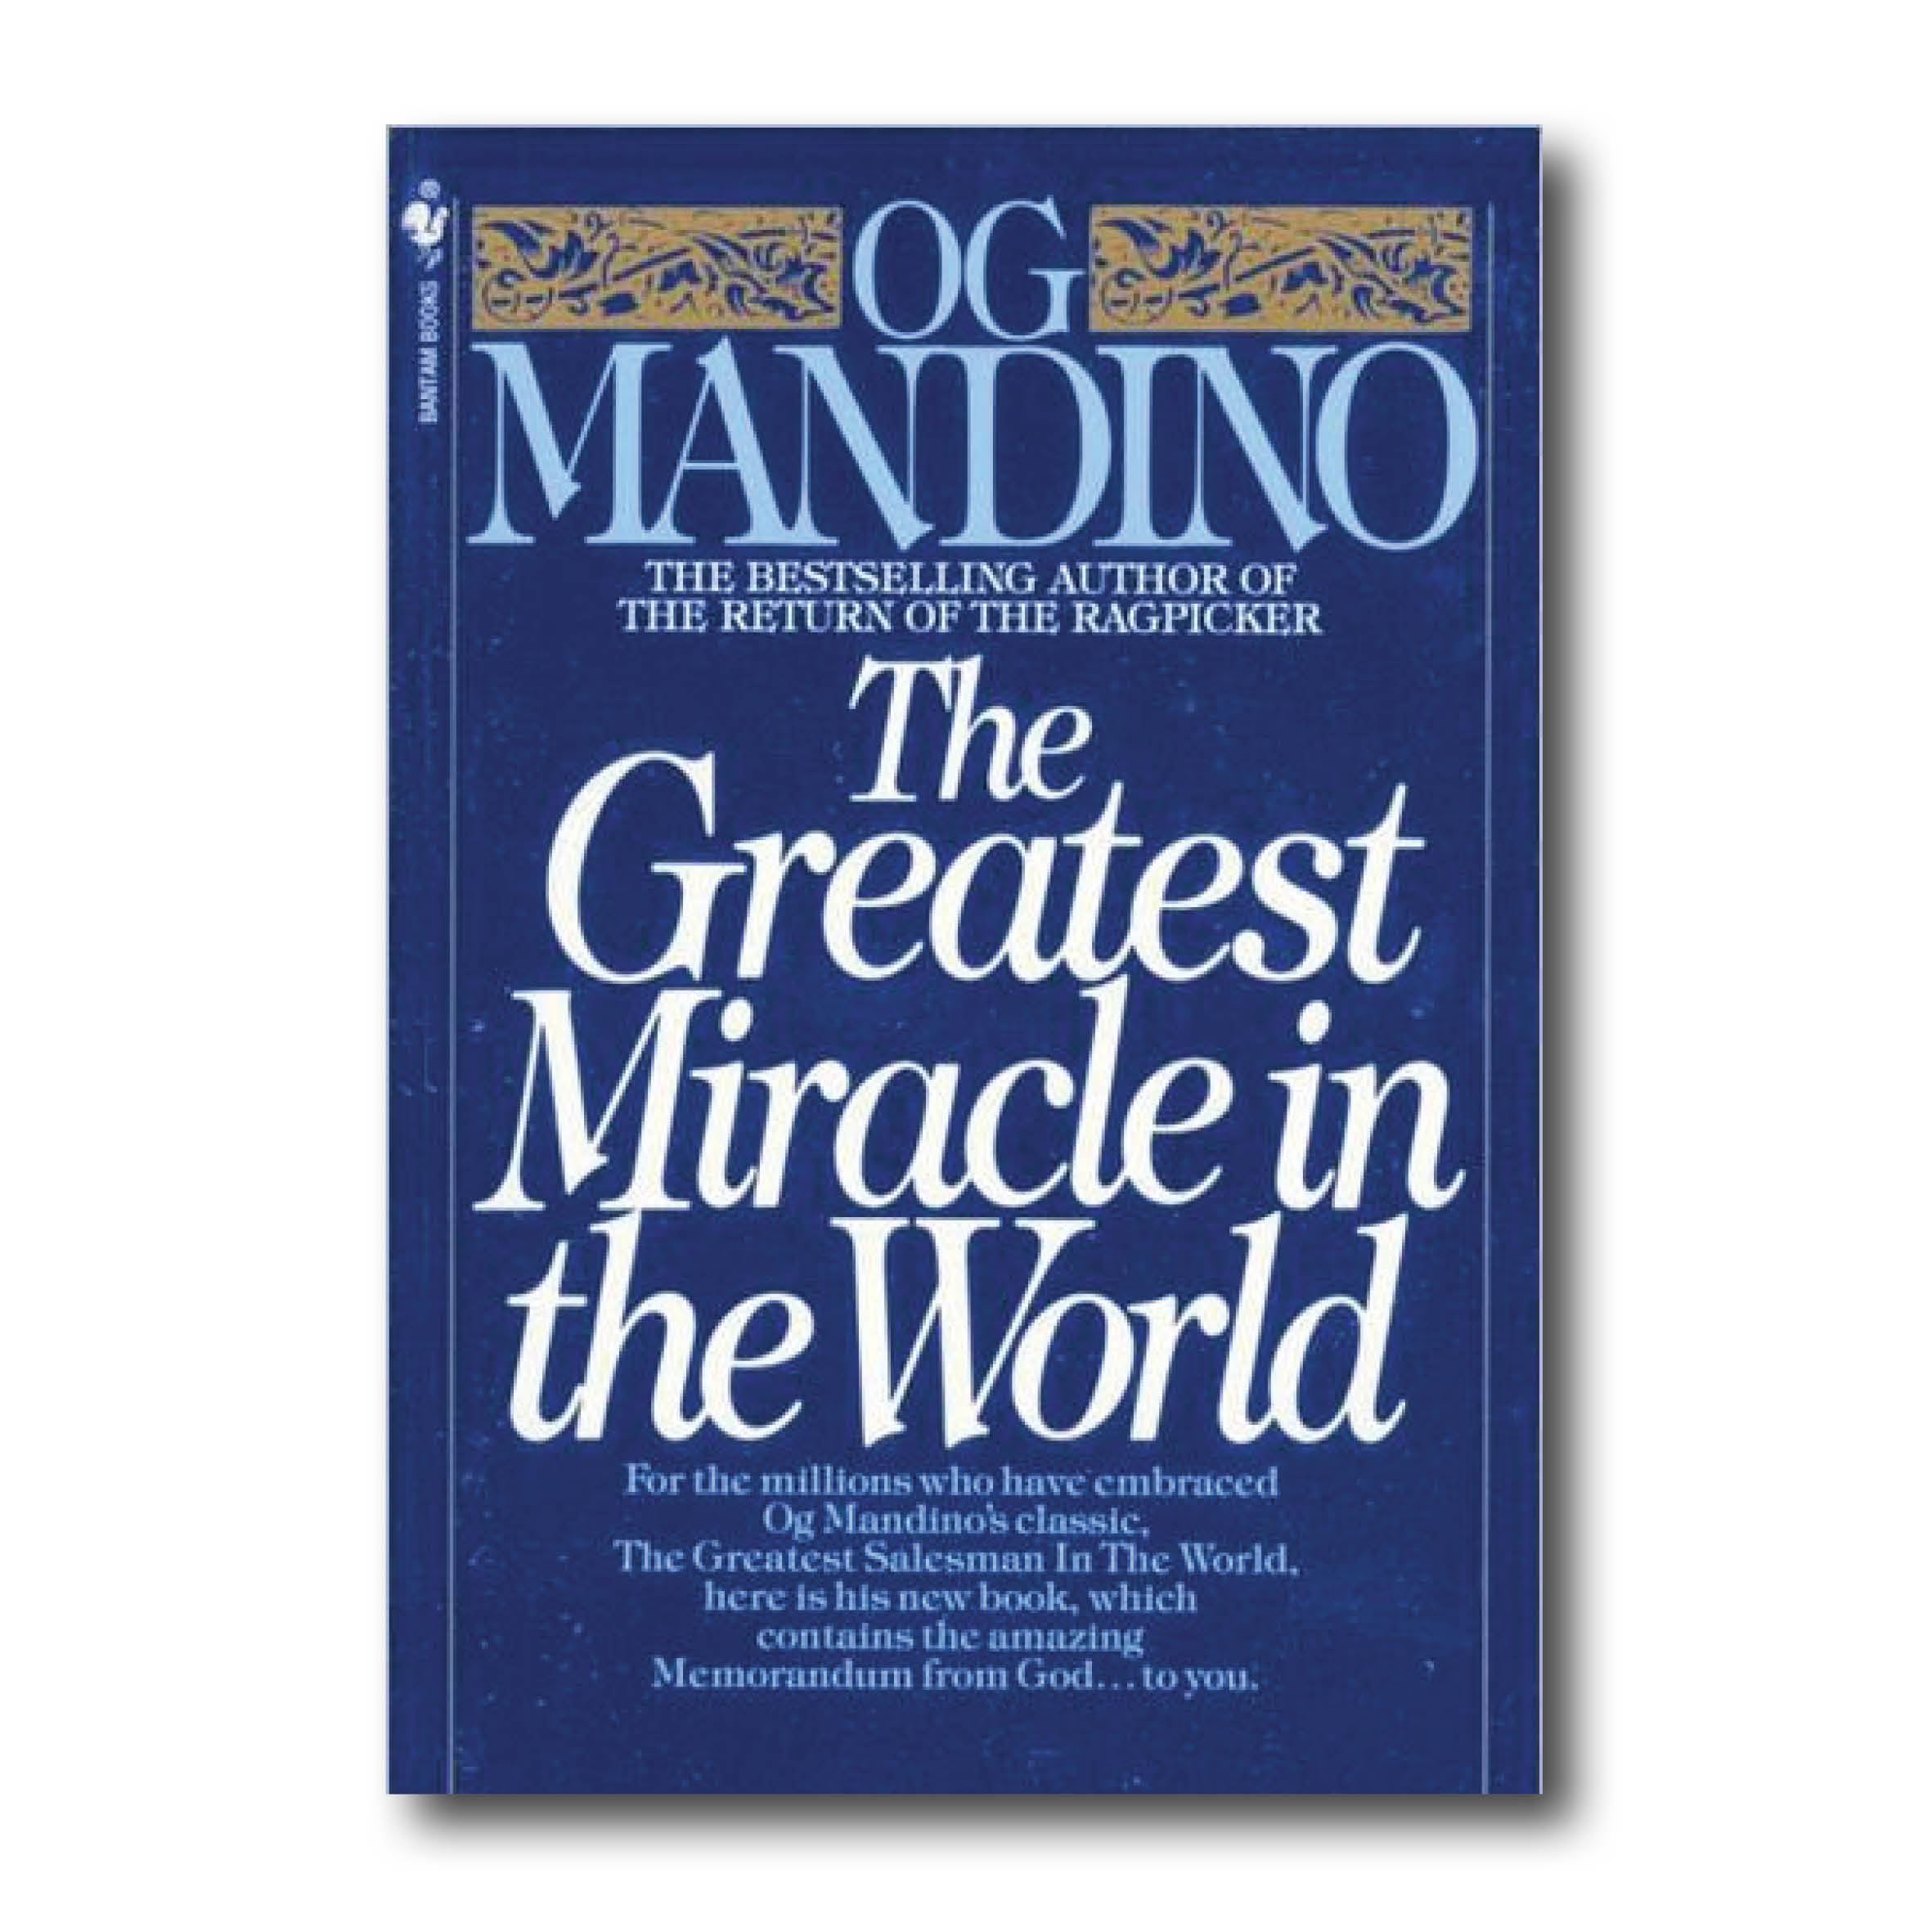 Mandino O 1981 The greatest miracle in the world New York Bantam Books_